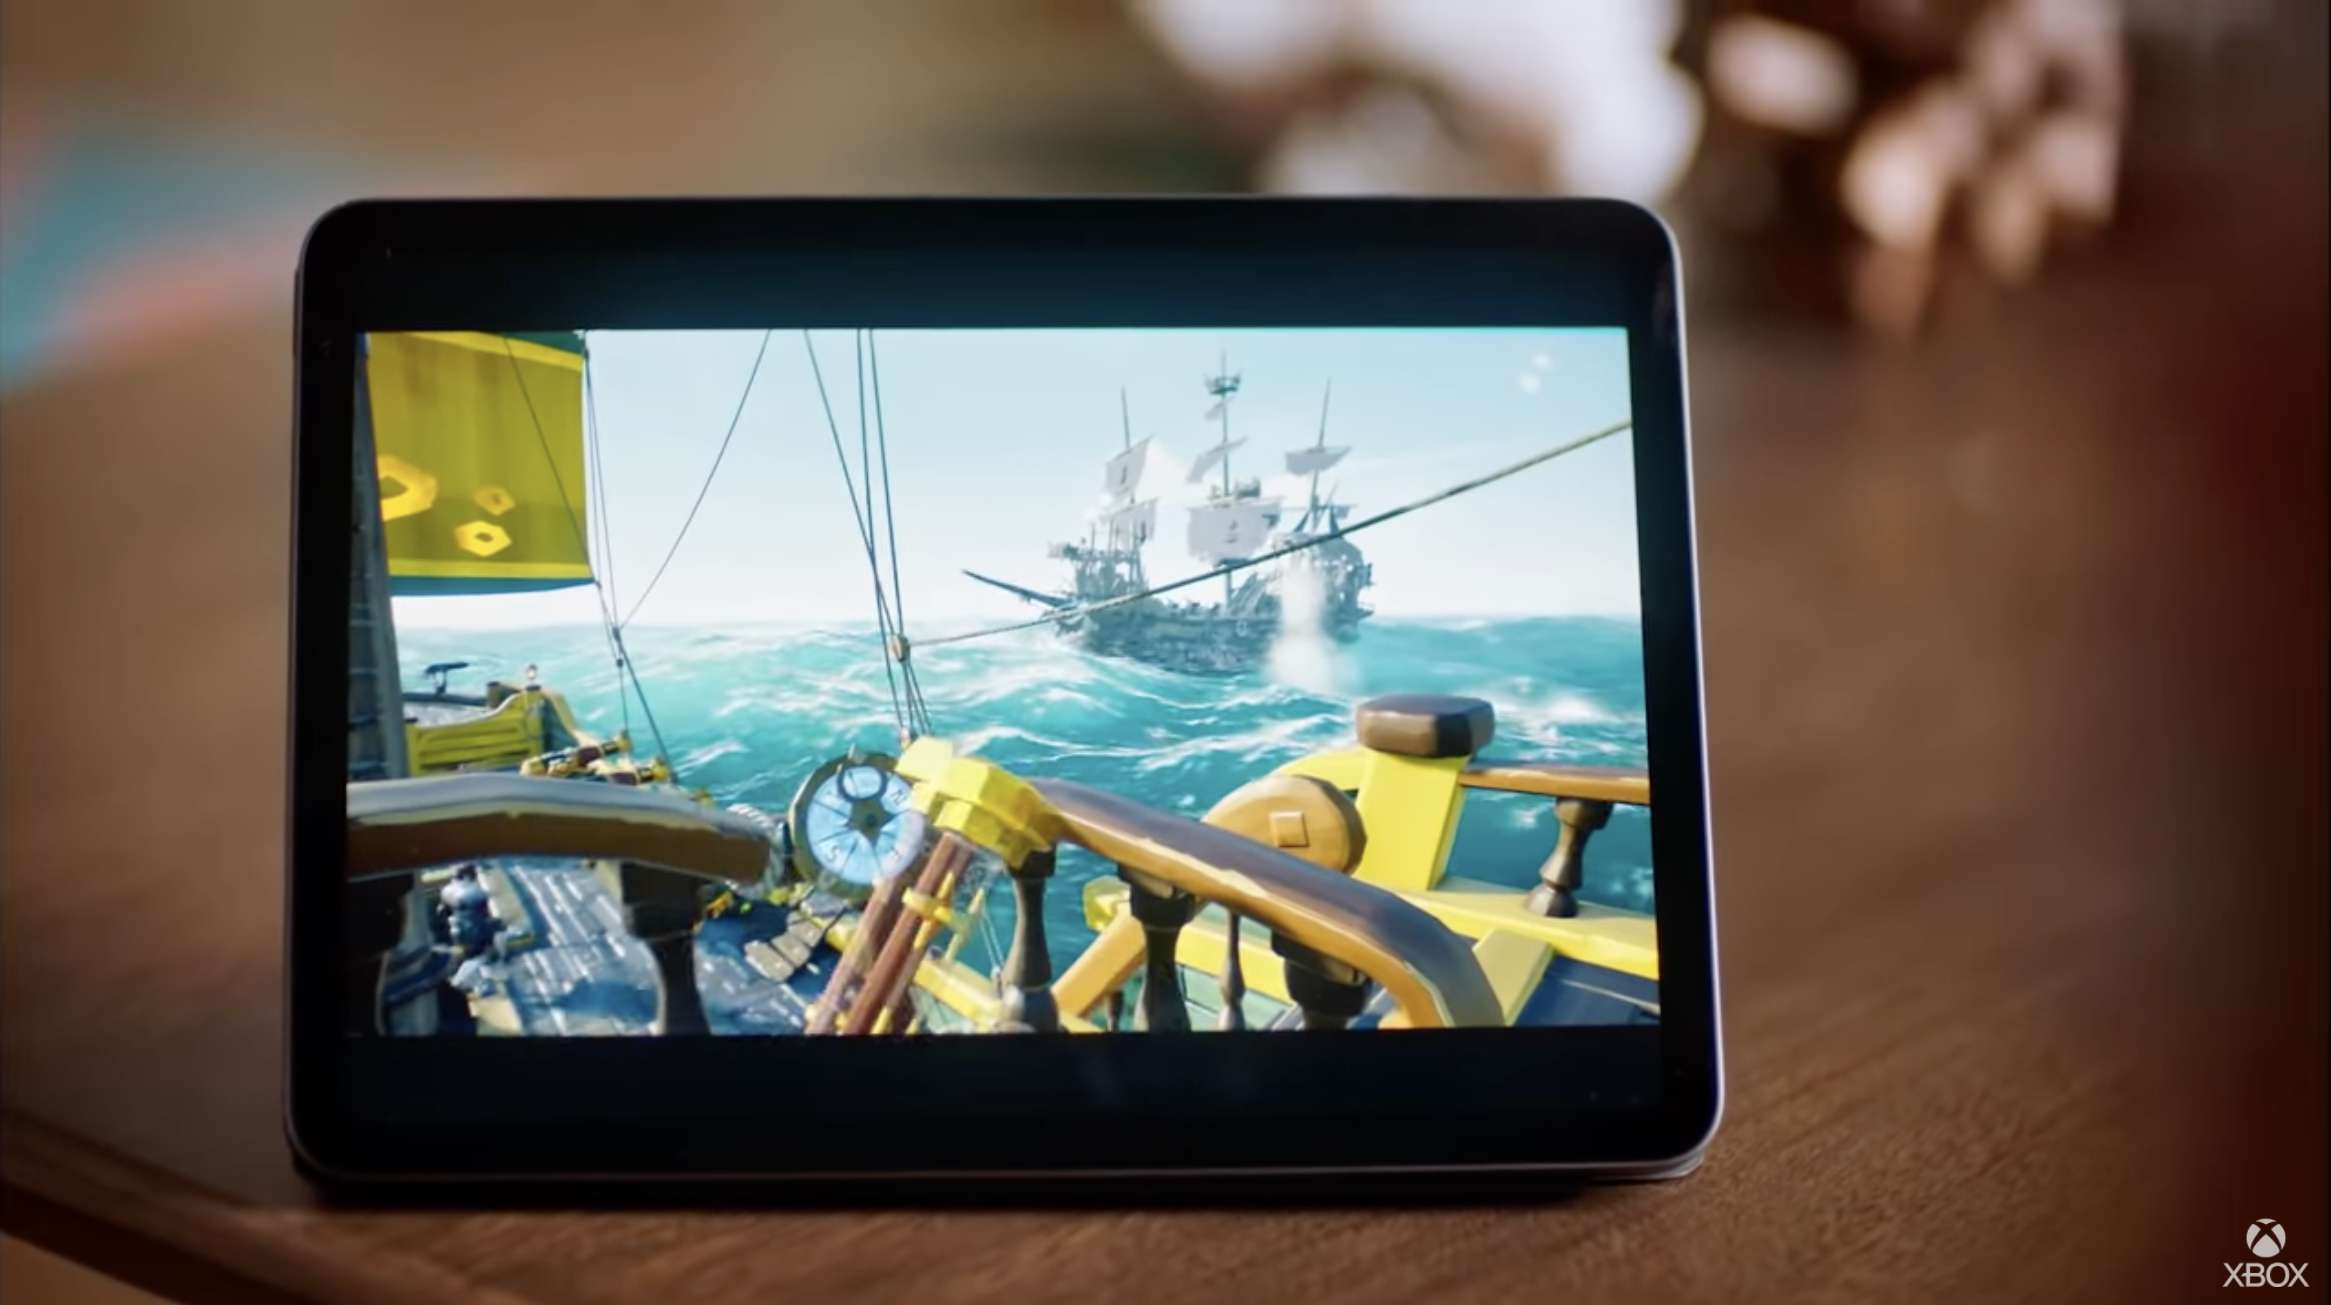 Sea of Thieves streaming on an iPad